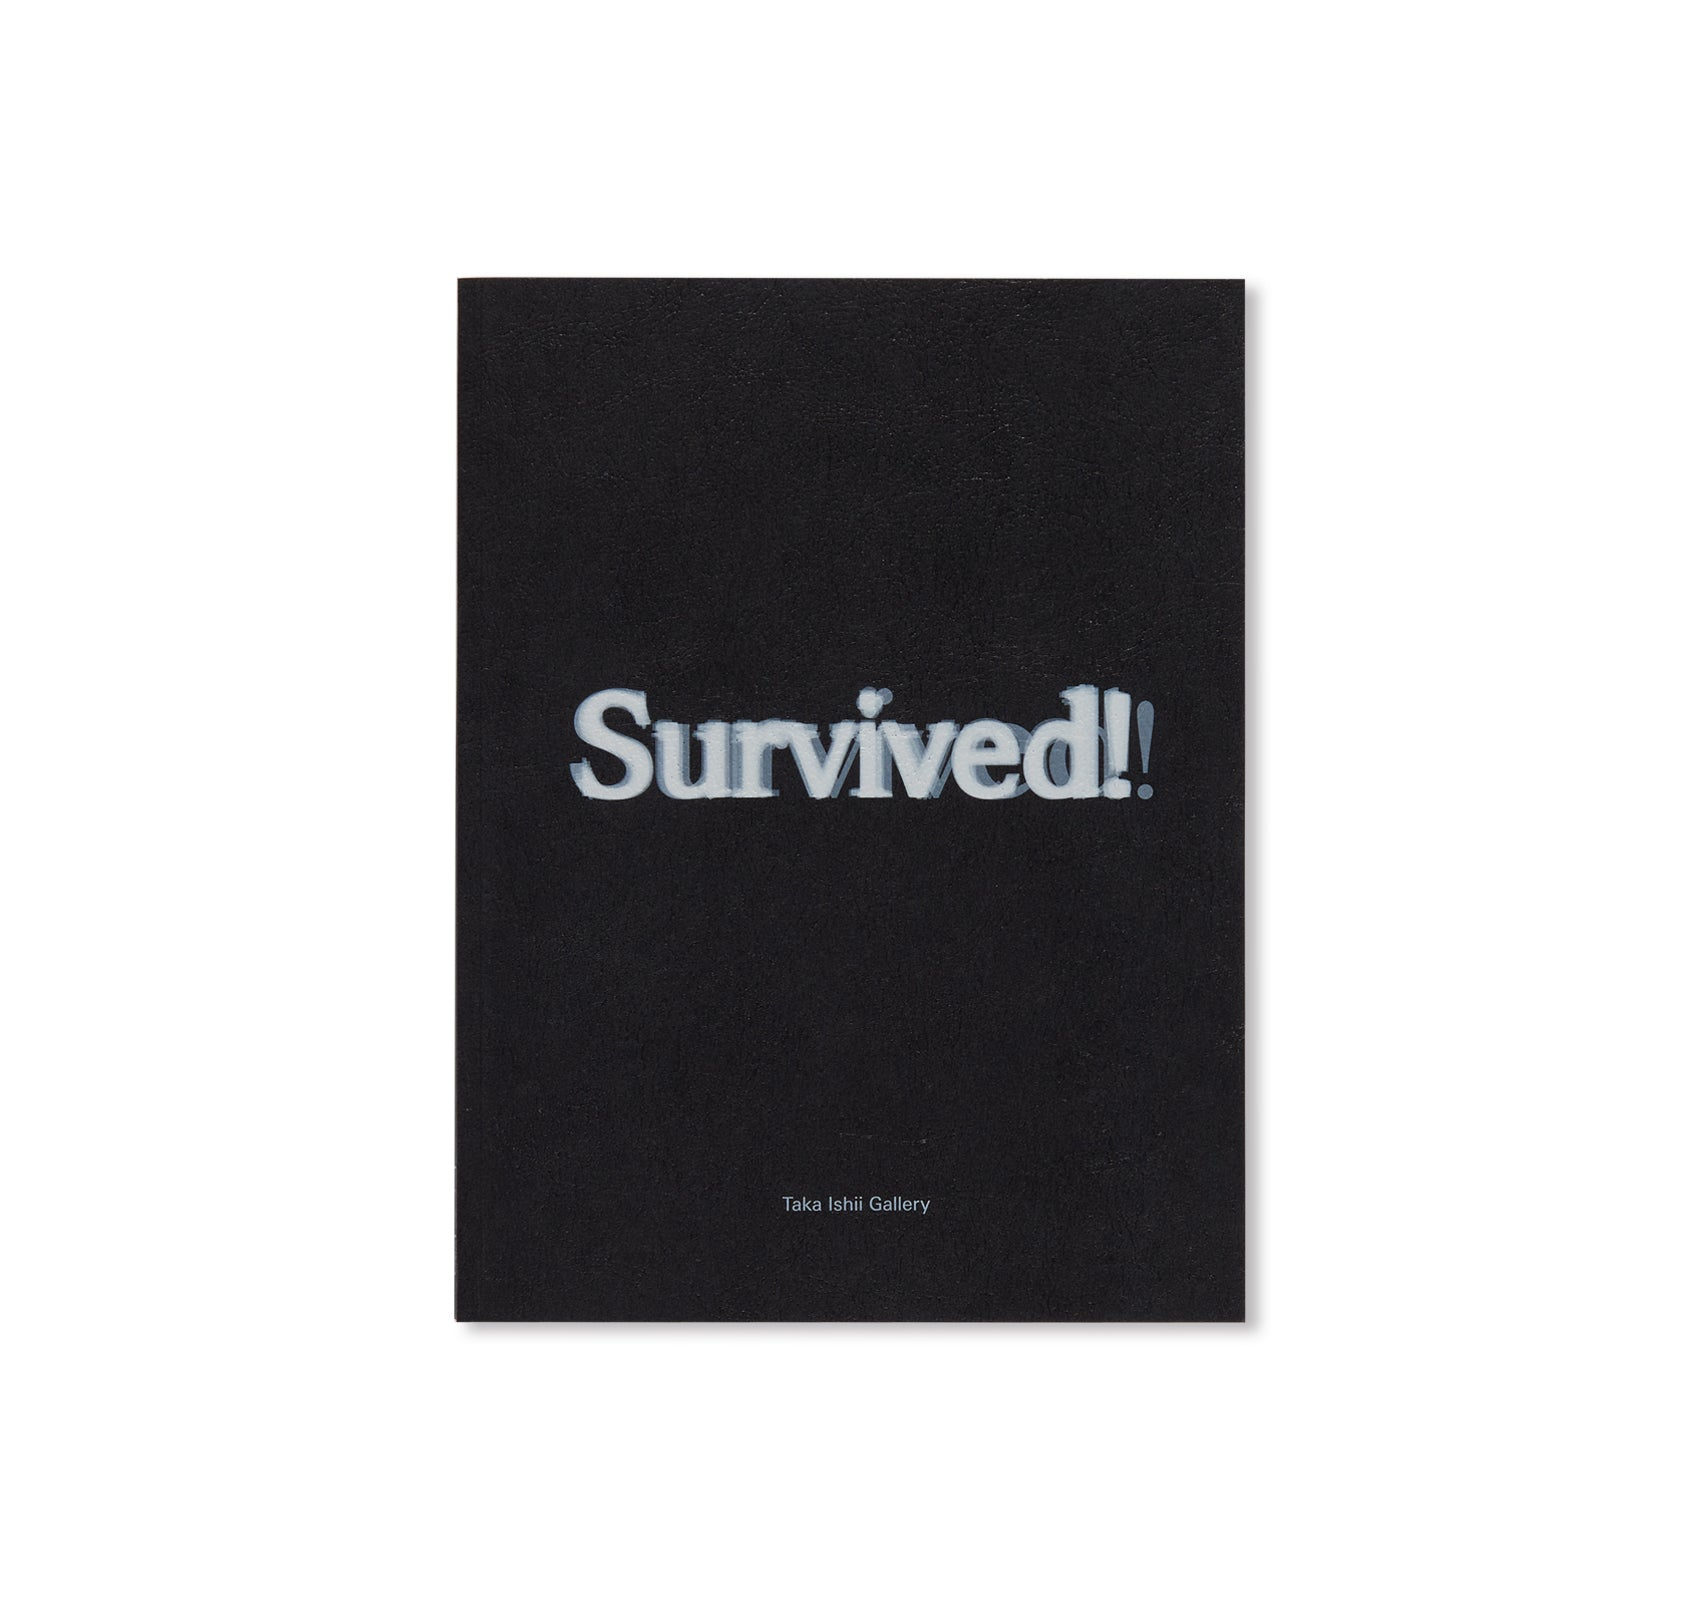 TAKA ISHII GALLERY 25TH  ANNIVERSARY CATALOGUE - SURVIVED!